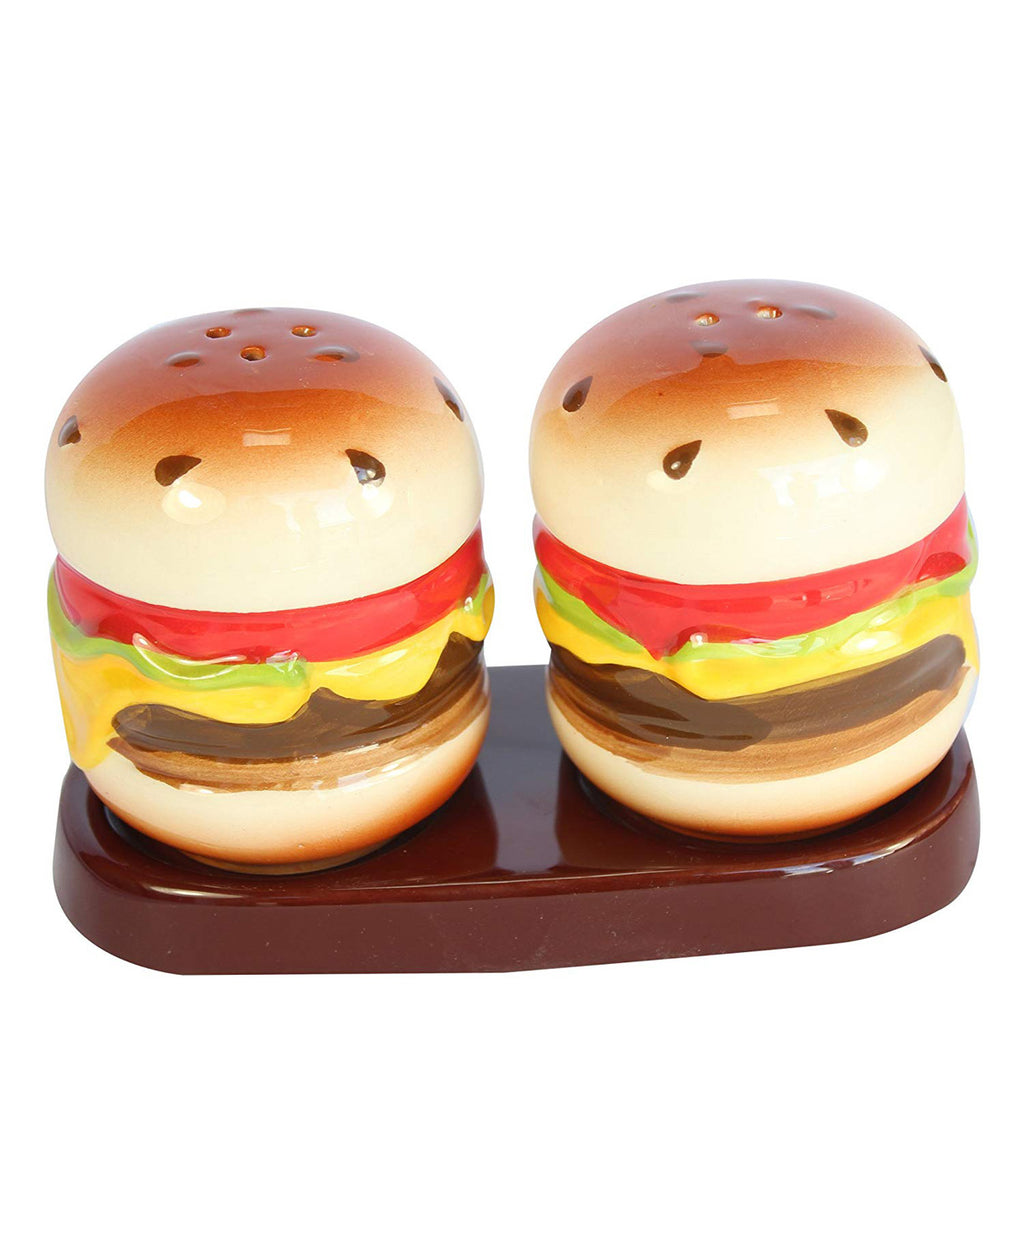 Hamburgers Ceramic Kitsch Salt & Pepper Shakers | Rebel Rebel Bruges